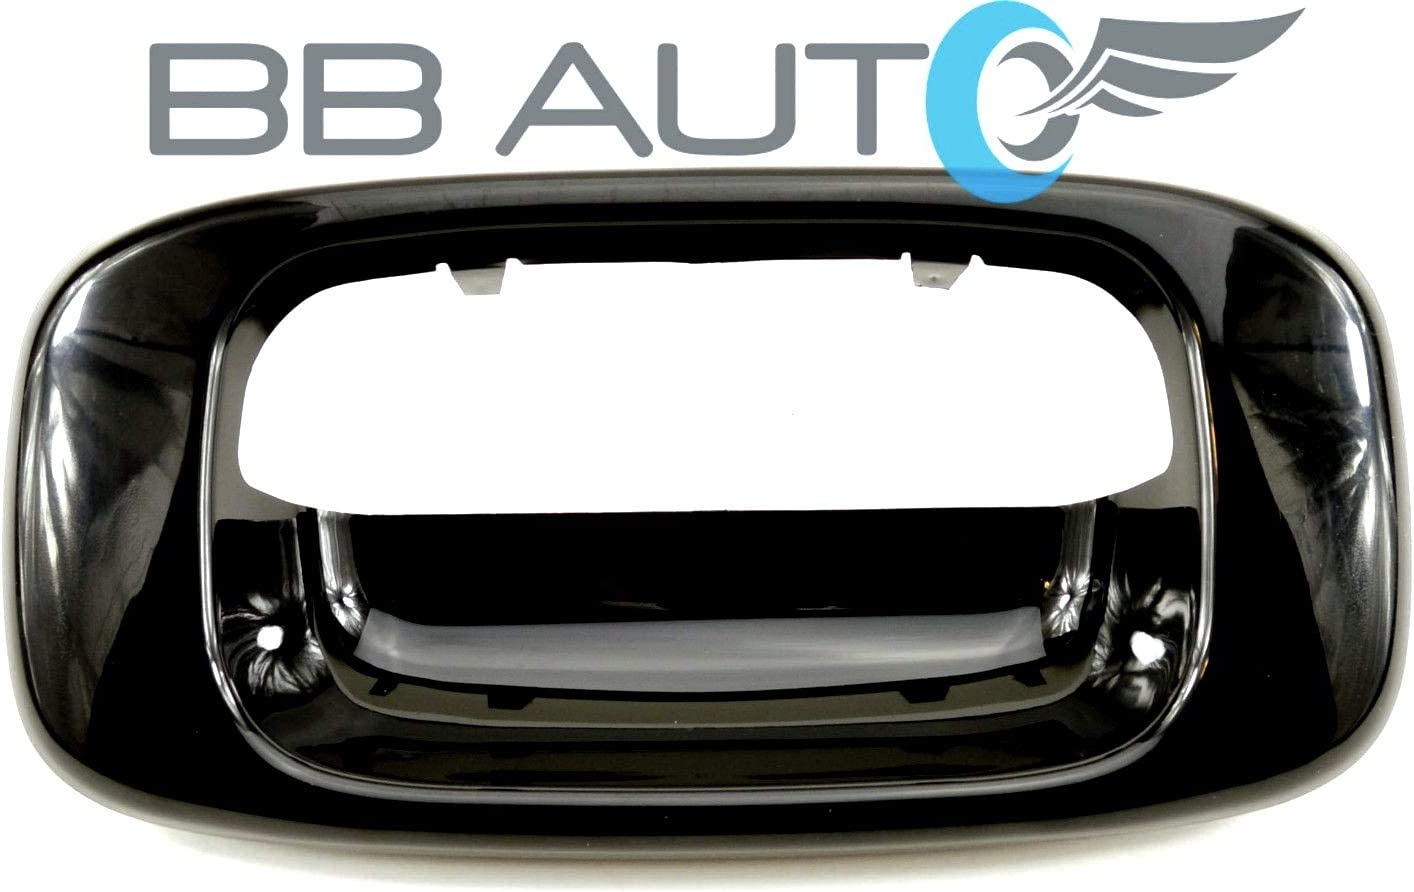 Painted To Match Tailgate Handle for Bezel 1999-2006 Chevy Silverado GMC Sierra